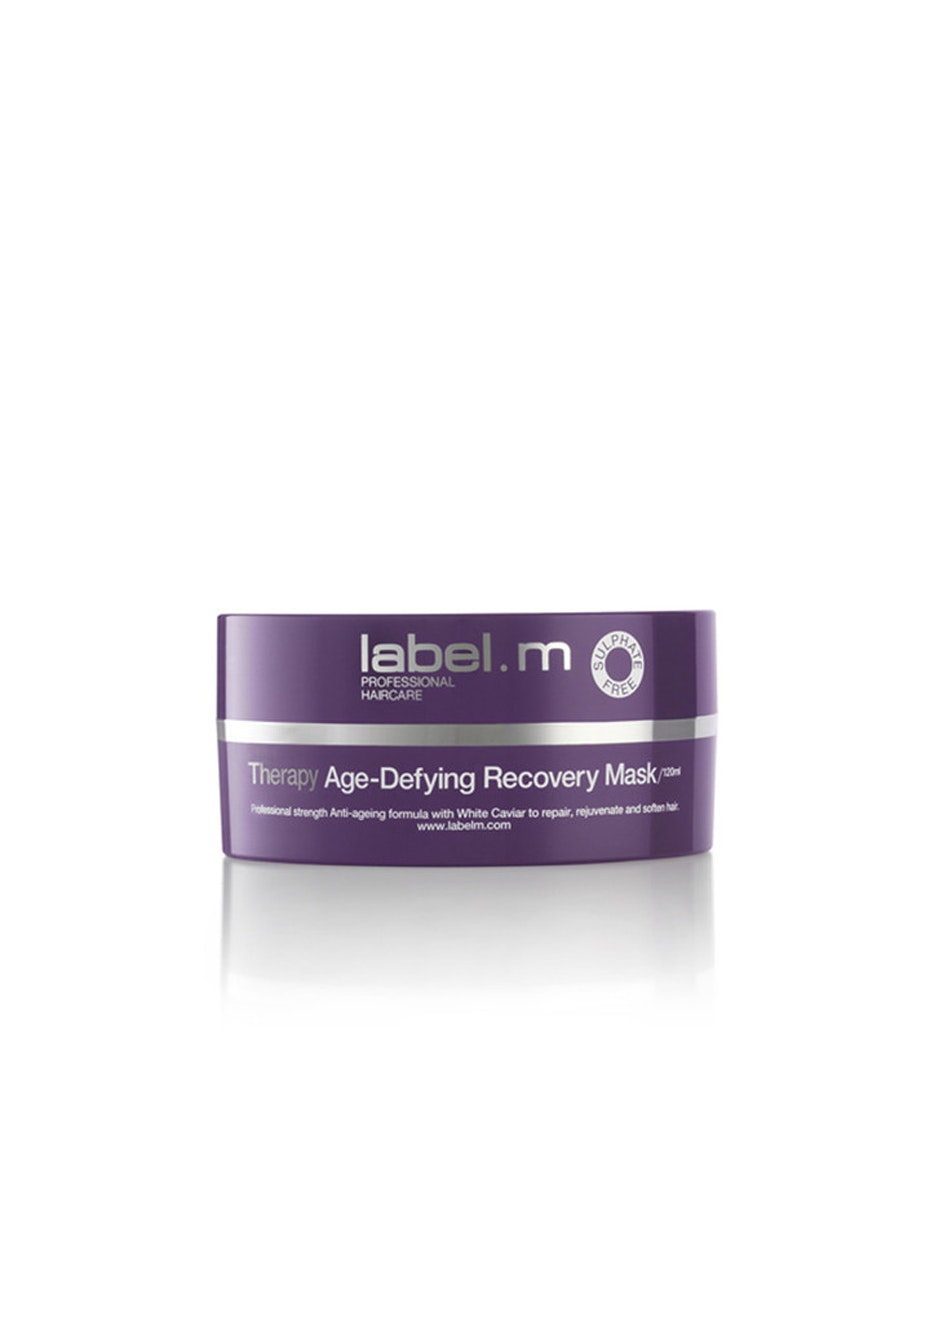 label.m - Therapy Age-Defying Recovery Mask 120ml